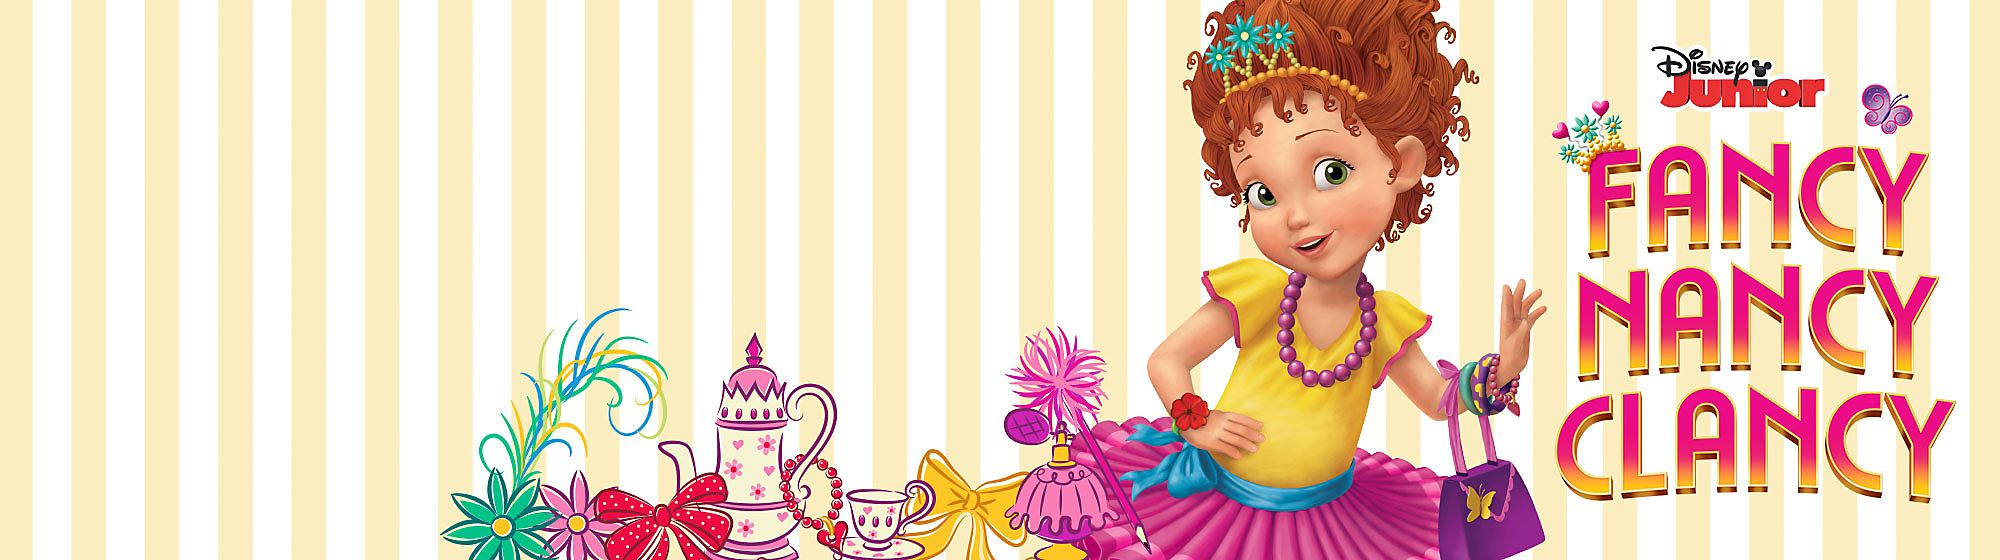 Fancy Nancy Clancy Ooh la la! Join Fancy Nancy and our fantastique collection of toys, costumes, clothing and more